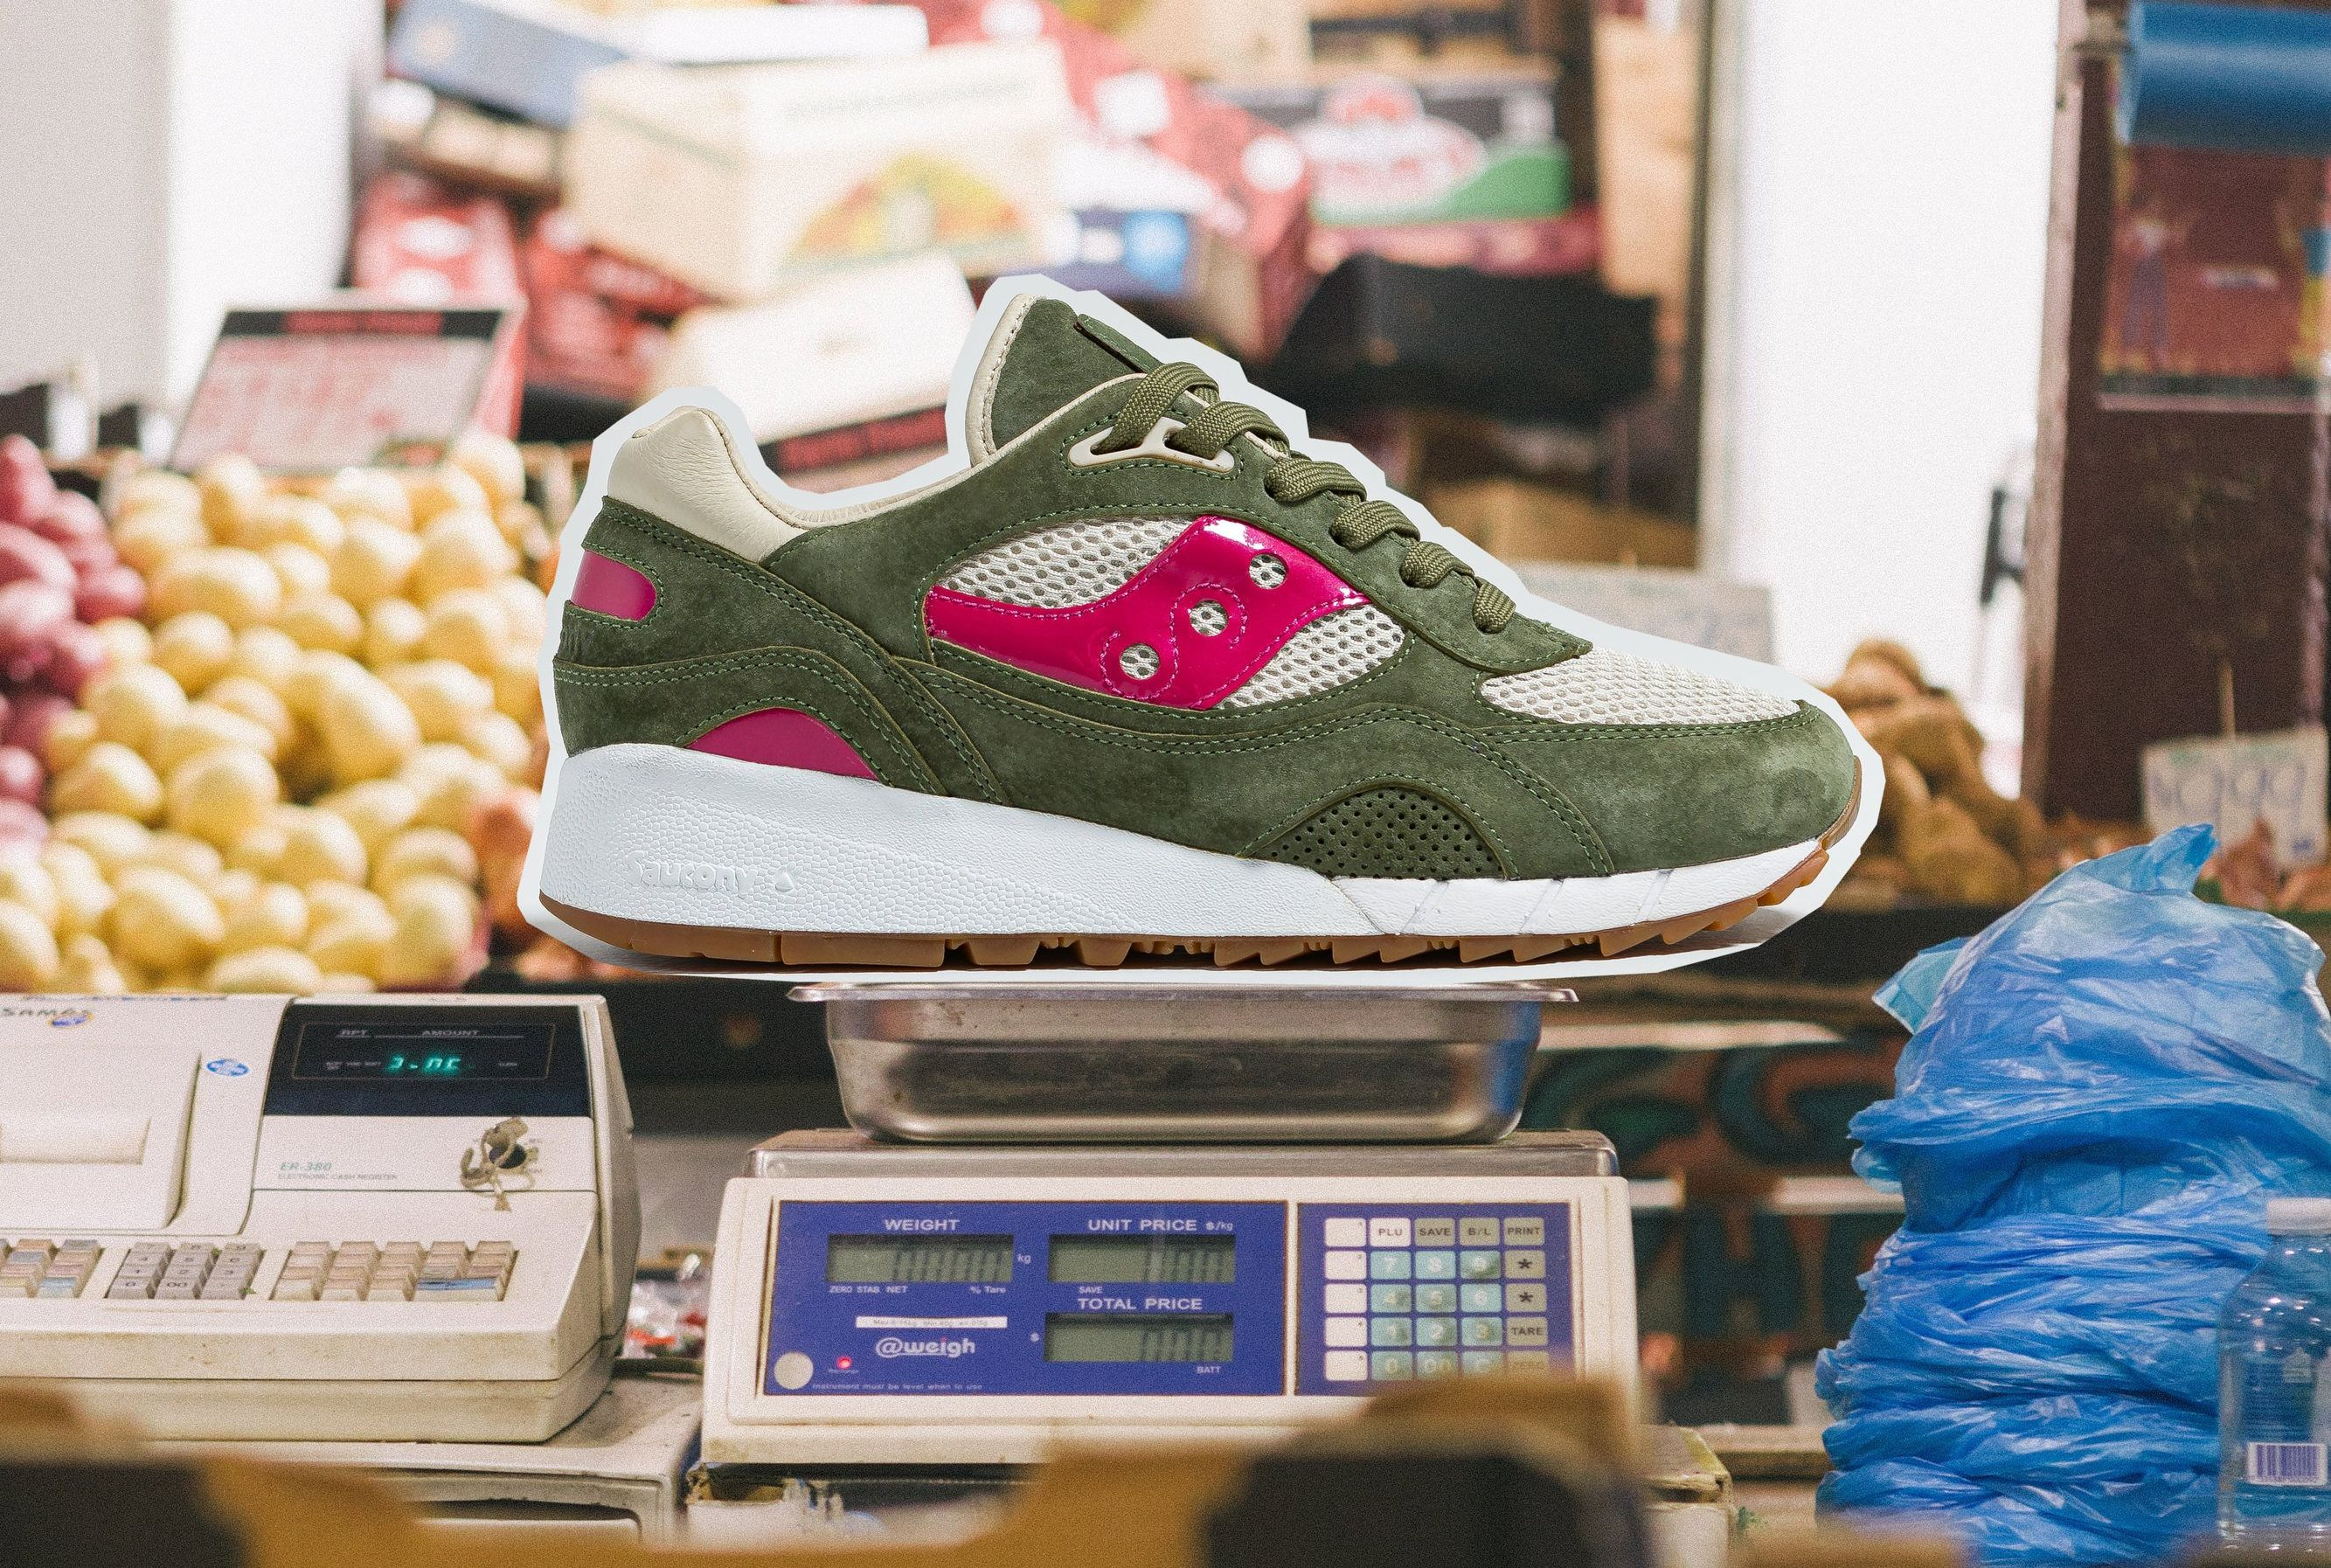 Up There x Saucony Shadow 6000 'Doors to the World'